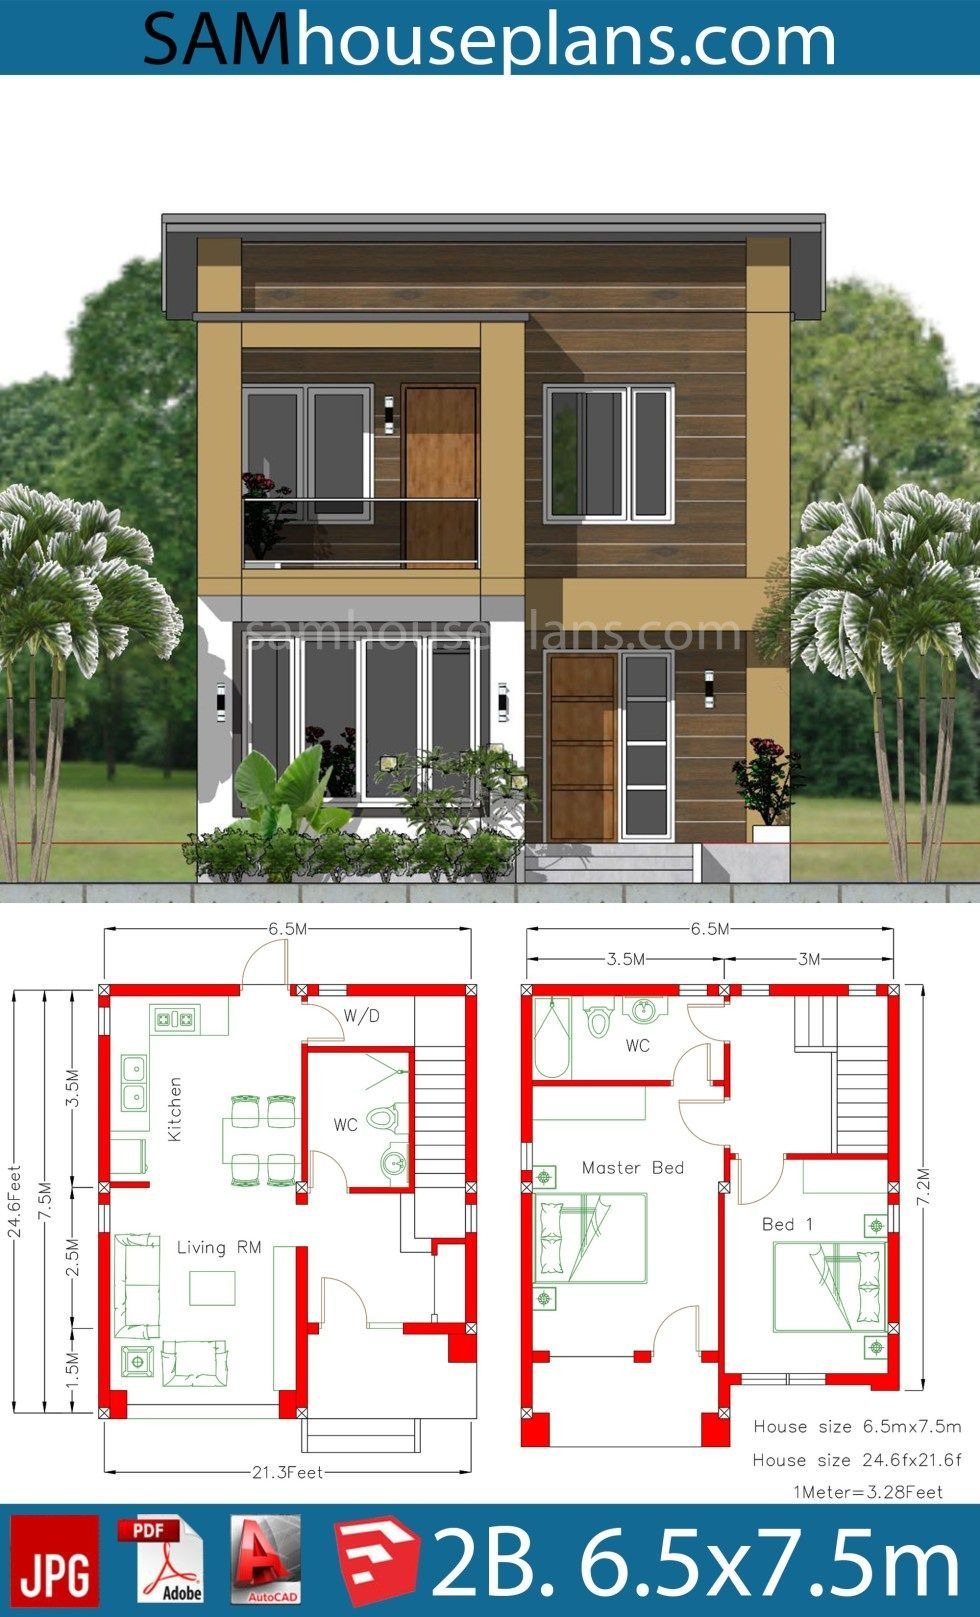 Beautiful House Plans with Photos New House Plan 6 5x7 5m with 2 Bedrooms A2 Sam House Plans In